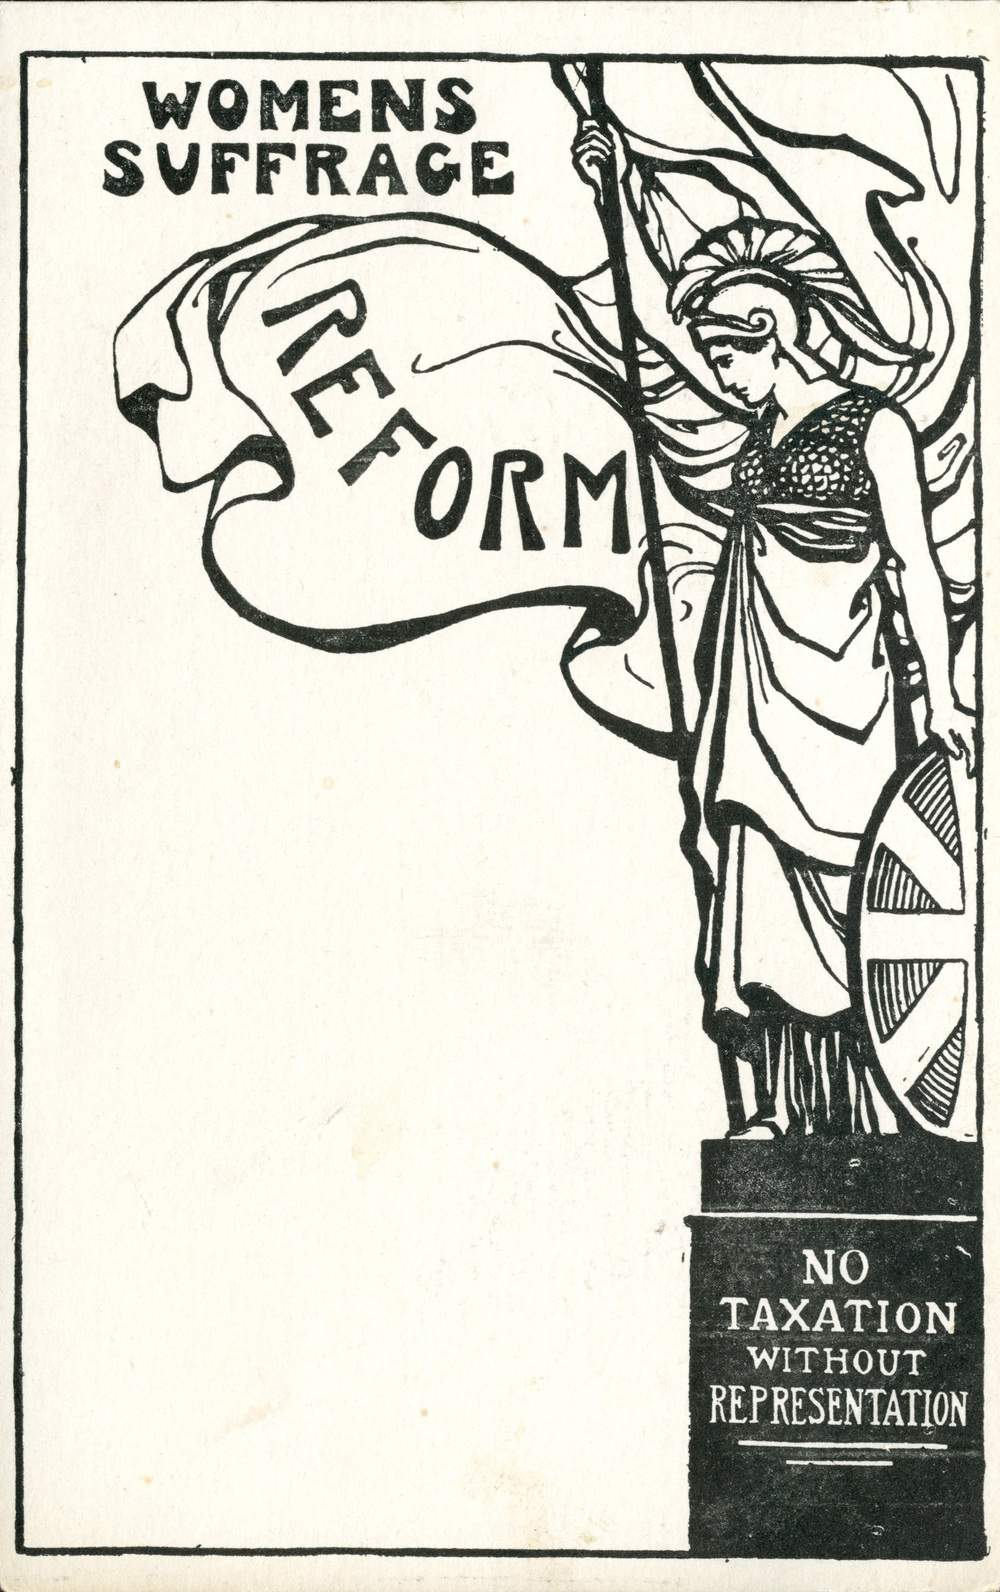 Postcard, Britannia, women's suffrage reform, no taxation without representation, 1911–12